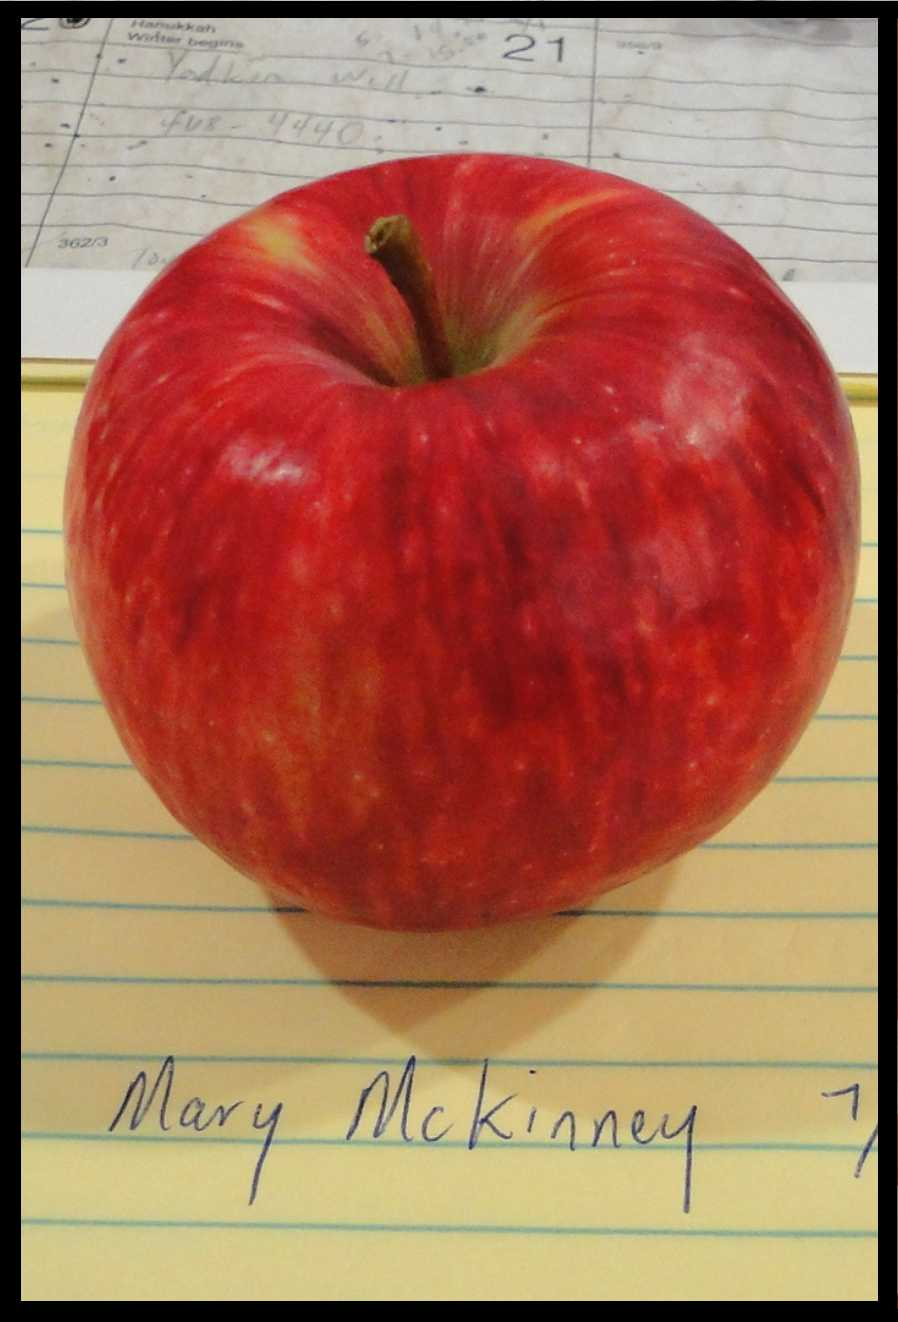 red apple with splashes of darker red